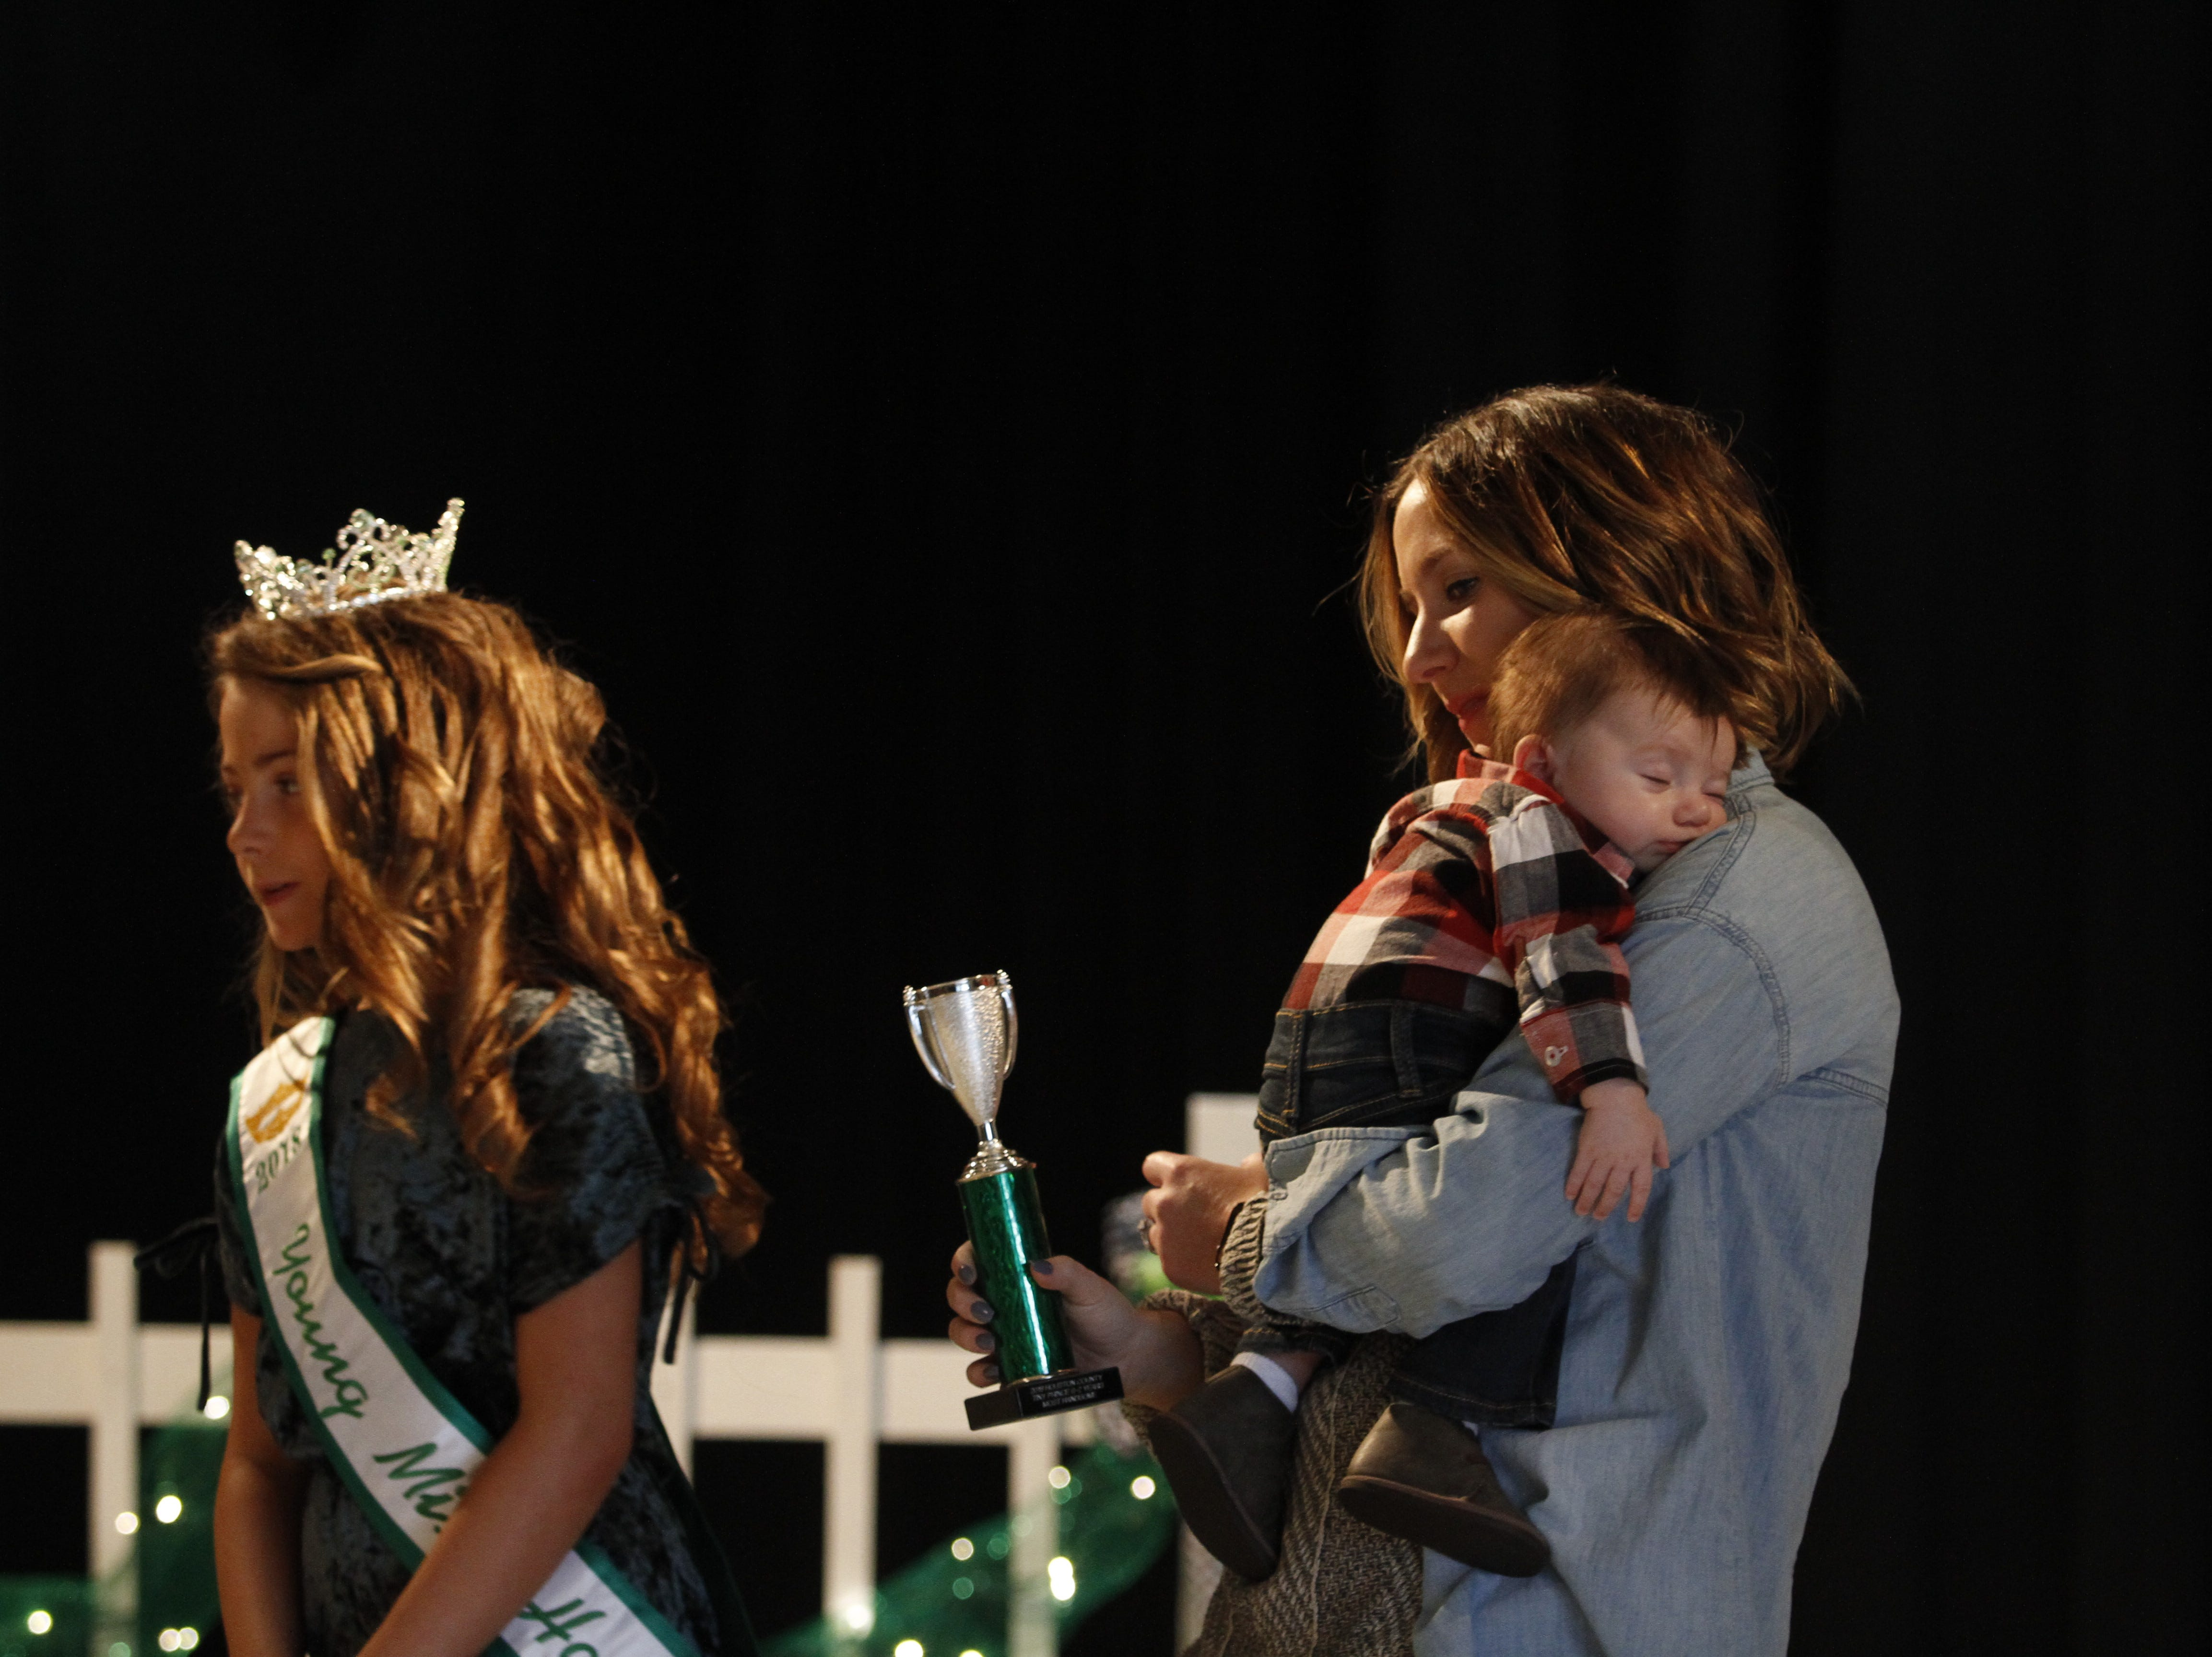 People gathered for the 2019 Houston County Tiny Prince, Tiny Princess Pageant at Houston County High School, on Saturday, March 2, 2019 in Erin, Tenn.